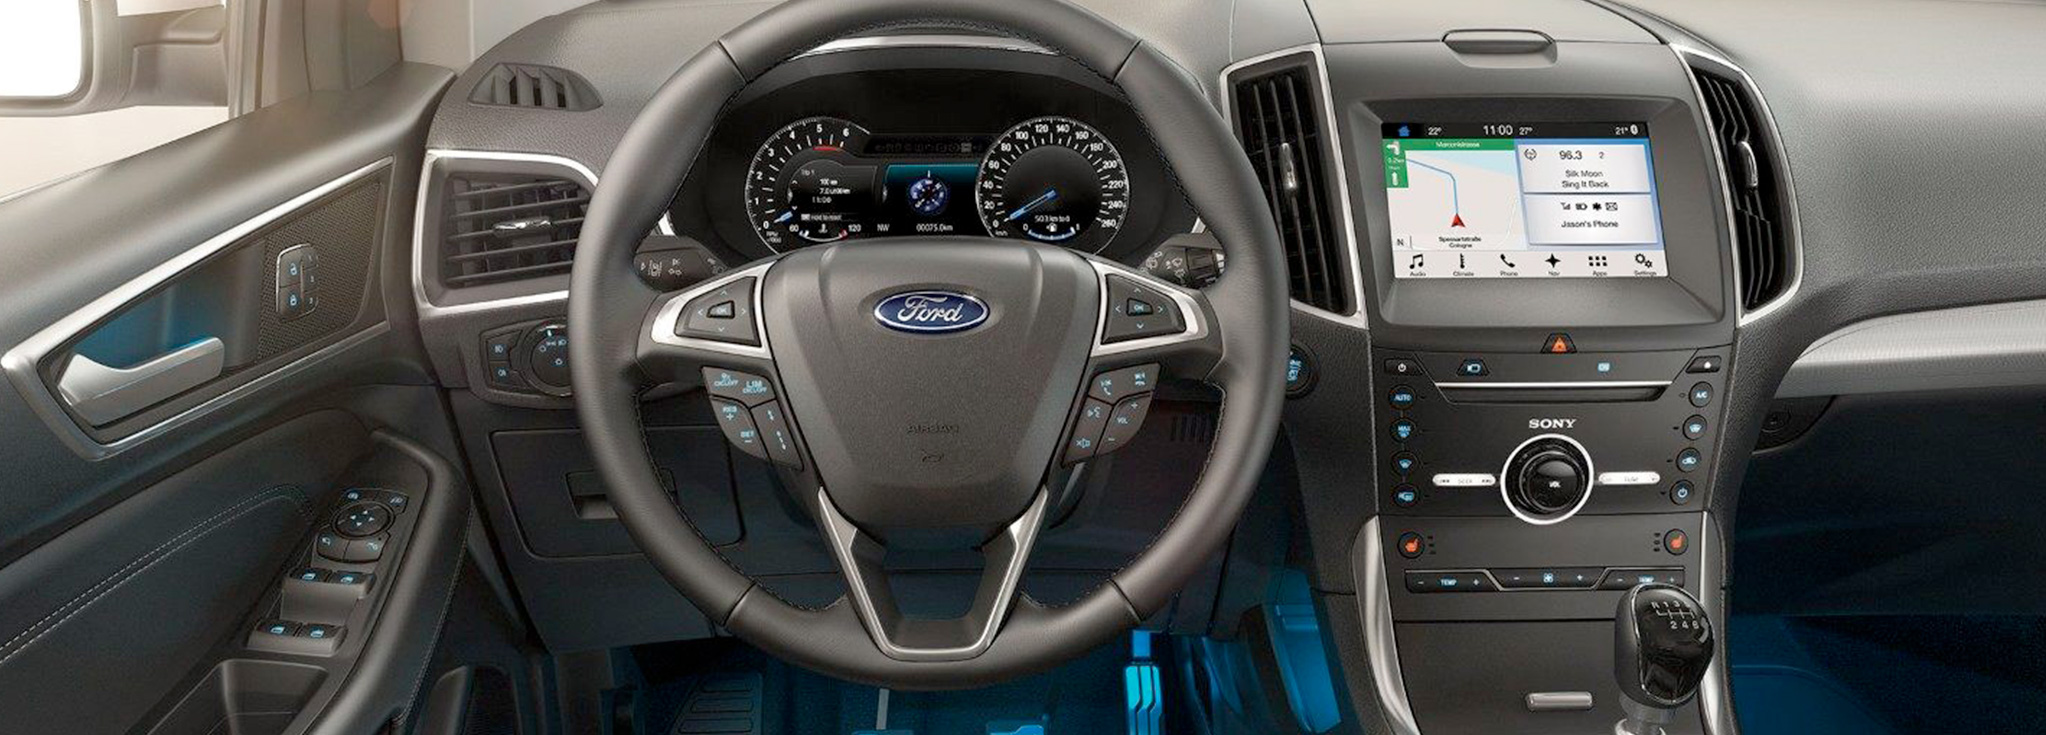 Consola interior ford edge